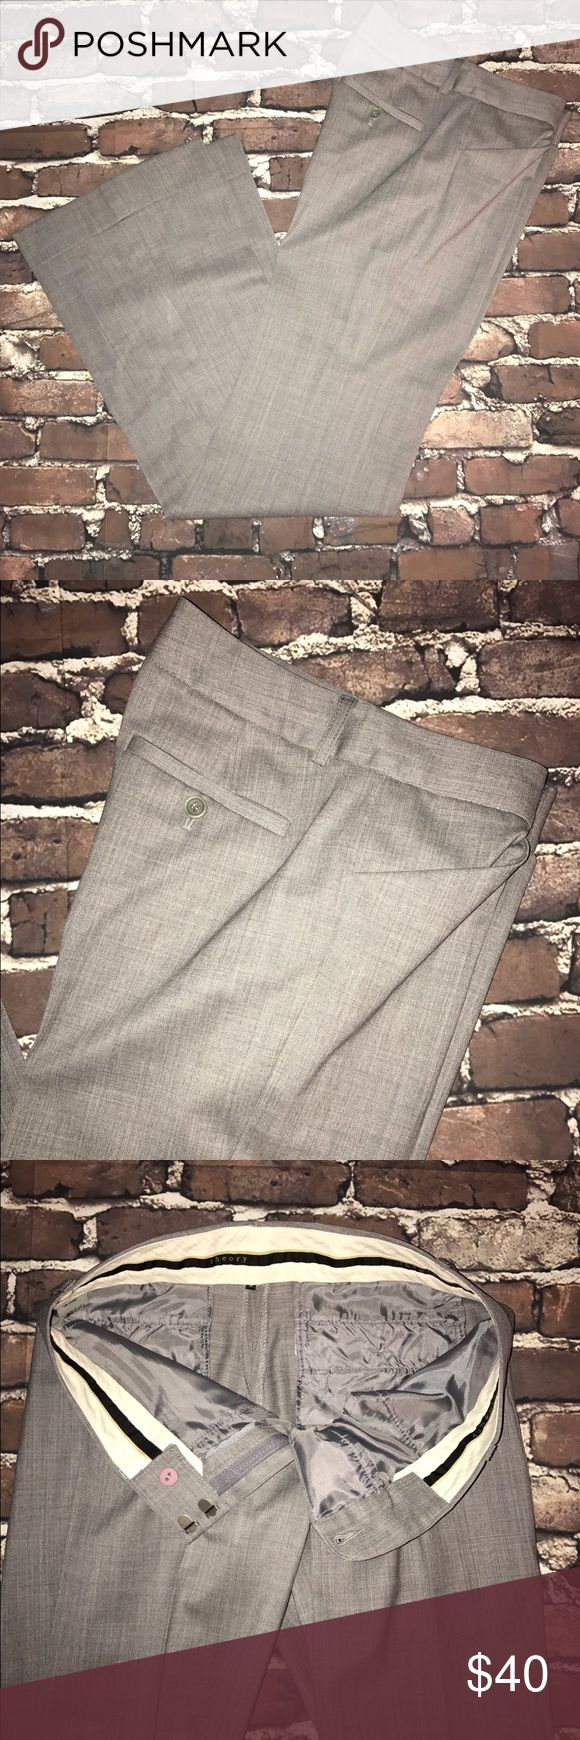 """THEORY~Flare leg Cuffed Dress Slacks Pants Size 0 New without tags..inseam is 32"""", length 40""""..2"""" cuff is Factory tacked on sides of hem and can be dropped for 2"""" additional length if needed for tall or leggy ladies. Lightweight season less wool would be okay for year-round wear! Theory Pants Trousers"""